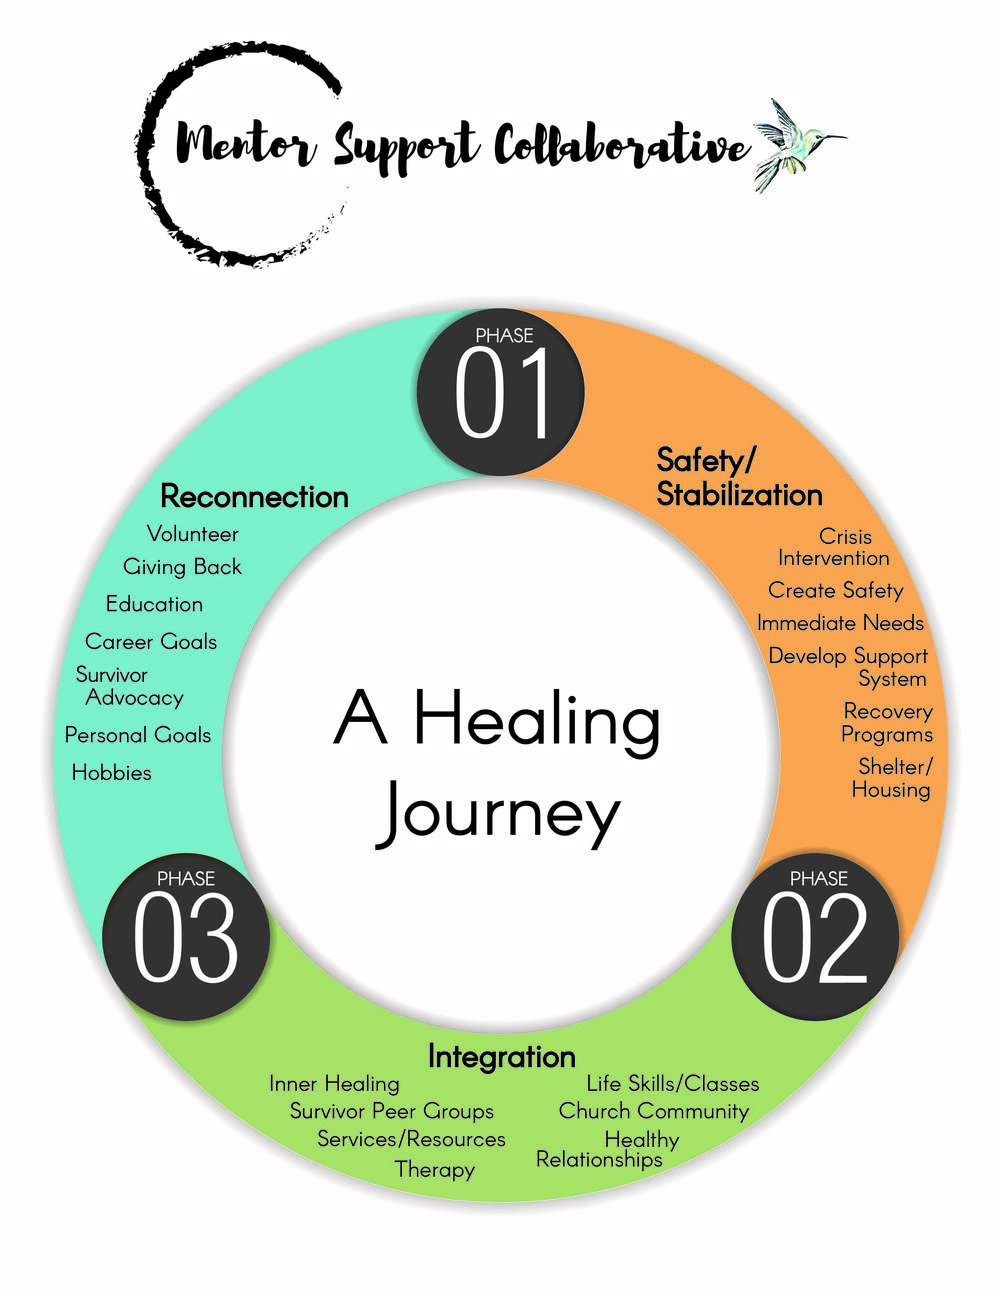 From Survivor to Thriver! - Based on clinical research, there are three phases of a healthy healing model. The categories listed in each phase have multiple options within that category. Every survivor is in a different place (physically, emotionally, and spiritually) so an action plan allows for an individual healing pathway with many options of programs, classes, counseling, therapy, and other aftercare resources offered by community partners and churches, both faith and non-faith based.We connect potential mentees to healthy informed trained mentors, who have experience walking alongside complex trauma survivors through their healing journey. Mentors help mentees find a good-fitting trauma counselor and other resources provided by community partners.If you are interested in becoming a mentor or mentee, contact us.